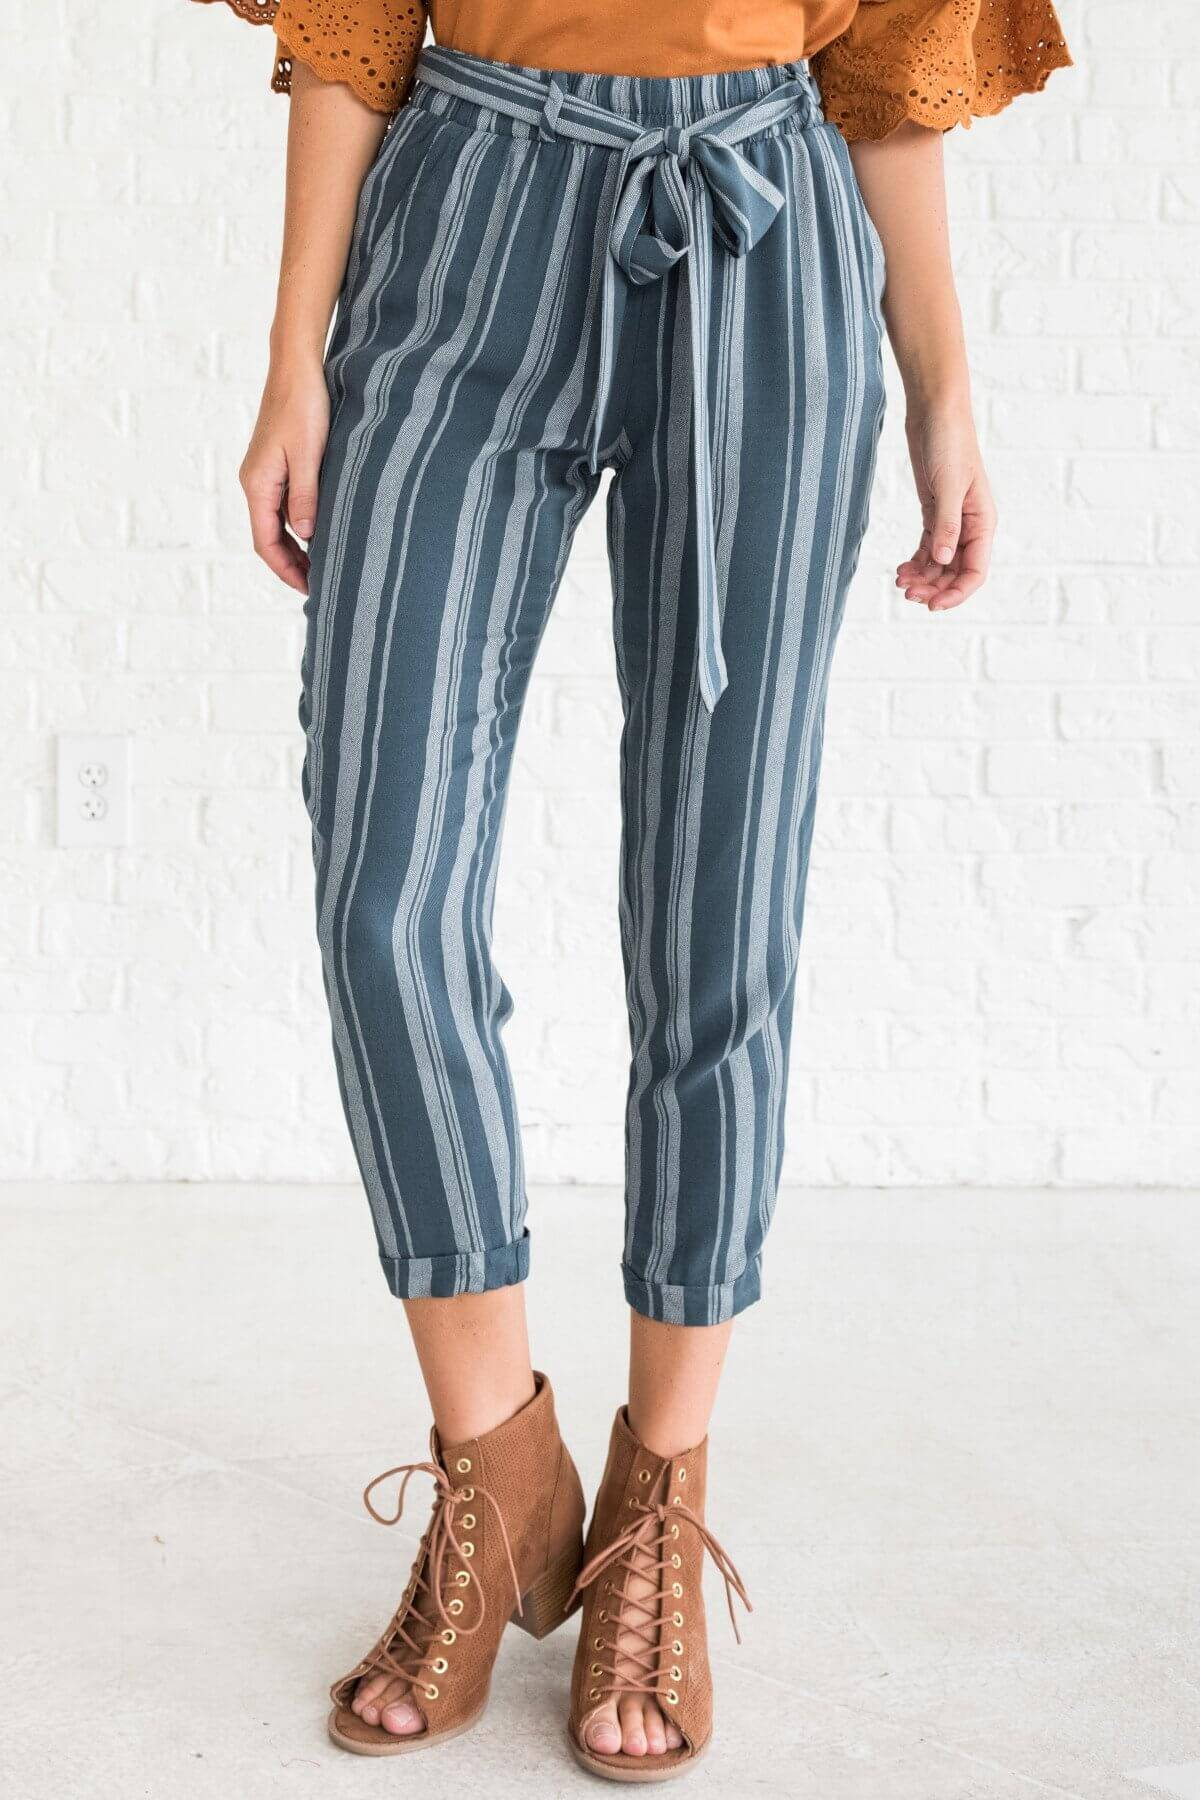 Teal Blue Striped Cute Pants Affordable Online Boutique